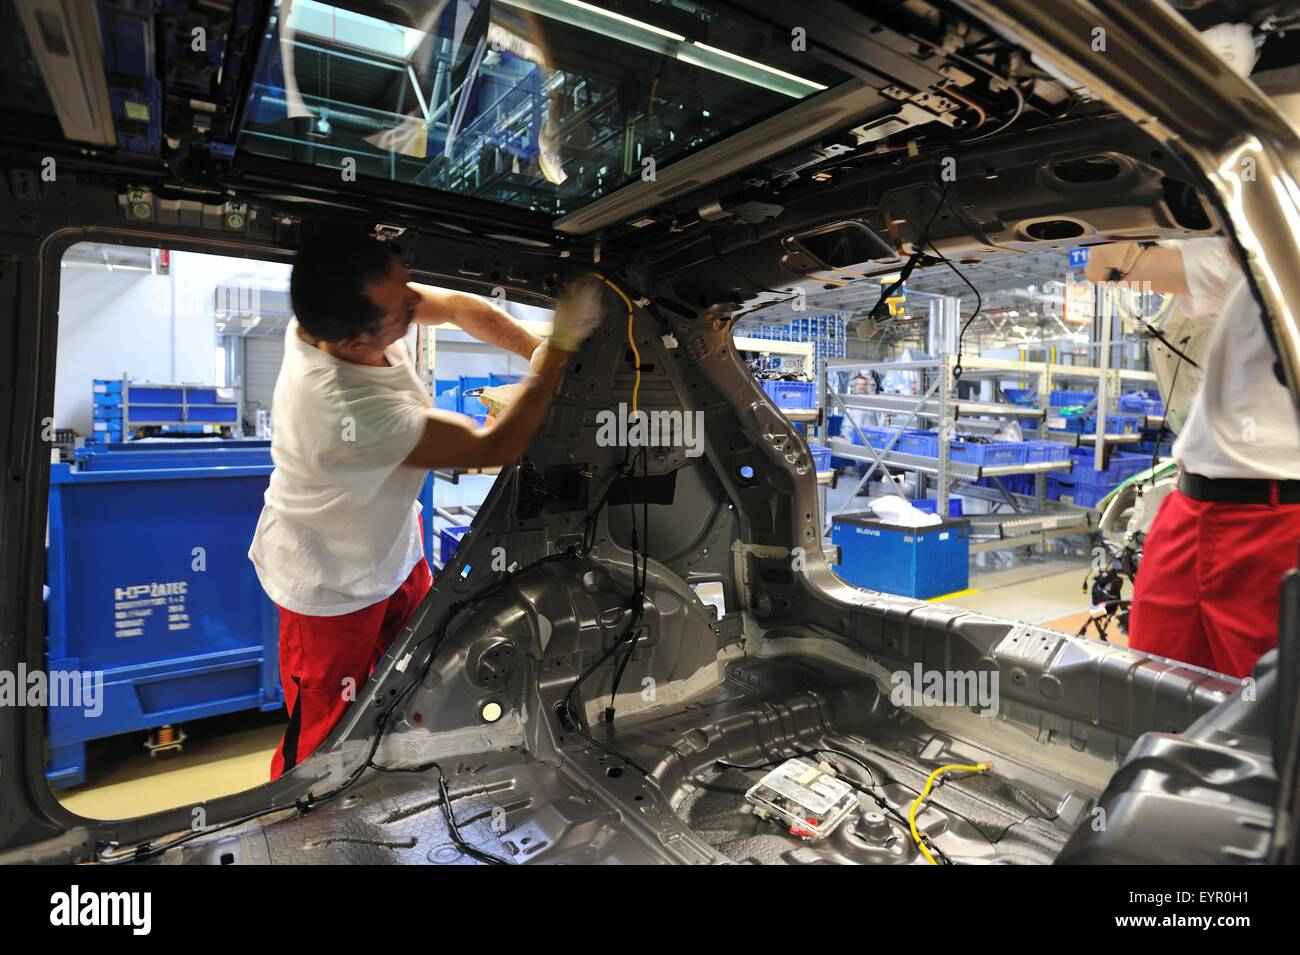 Wiring Loom Stock Photos Images Alamy Car Looms Inside A Modern Factory Vehicles And Parts Move Through The Production Process Fitting